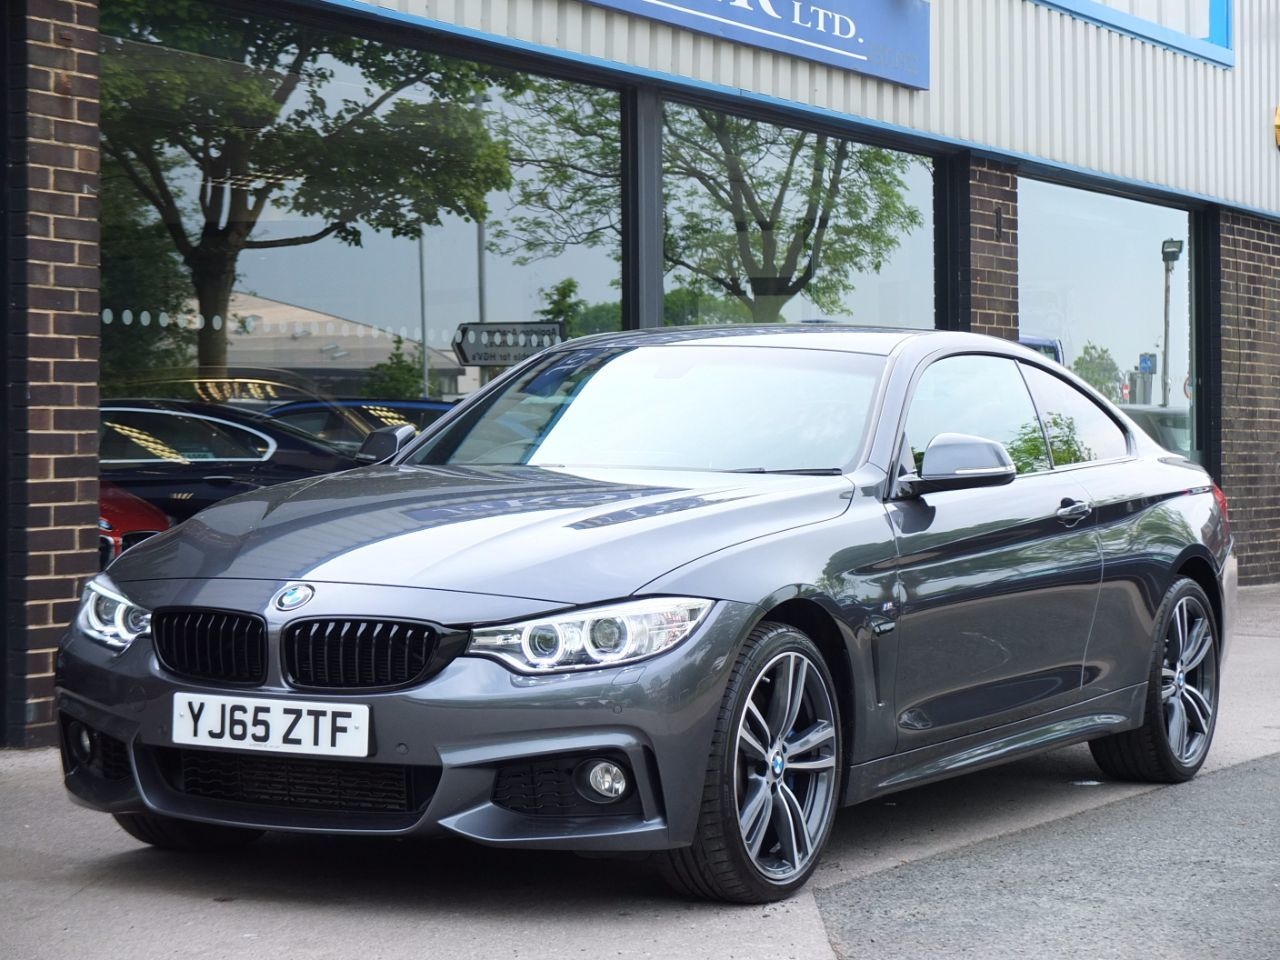 BMW 4 Series 3.0 435d xDrive M Sport Plus Coupe Auto Coupe Diesel Mineral Grey MetallicBMW 4 Series 3.0 435d xDrive M Sport Plus Coupe Auto Coupe Diesel Mineral Grey Metallic at fa Roper Ltd Bradford